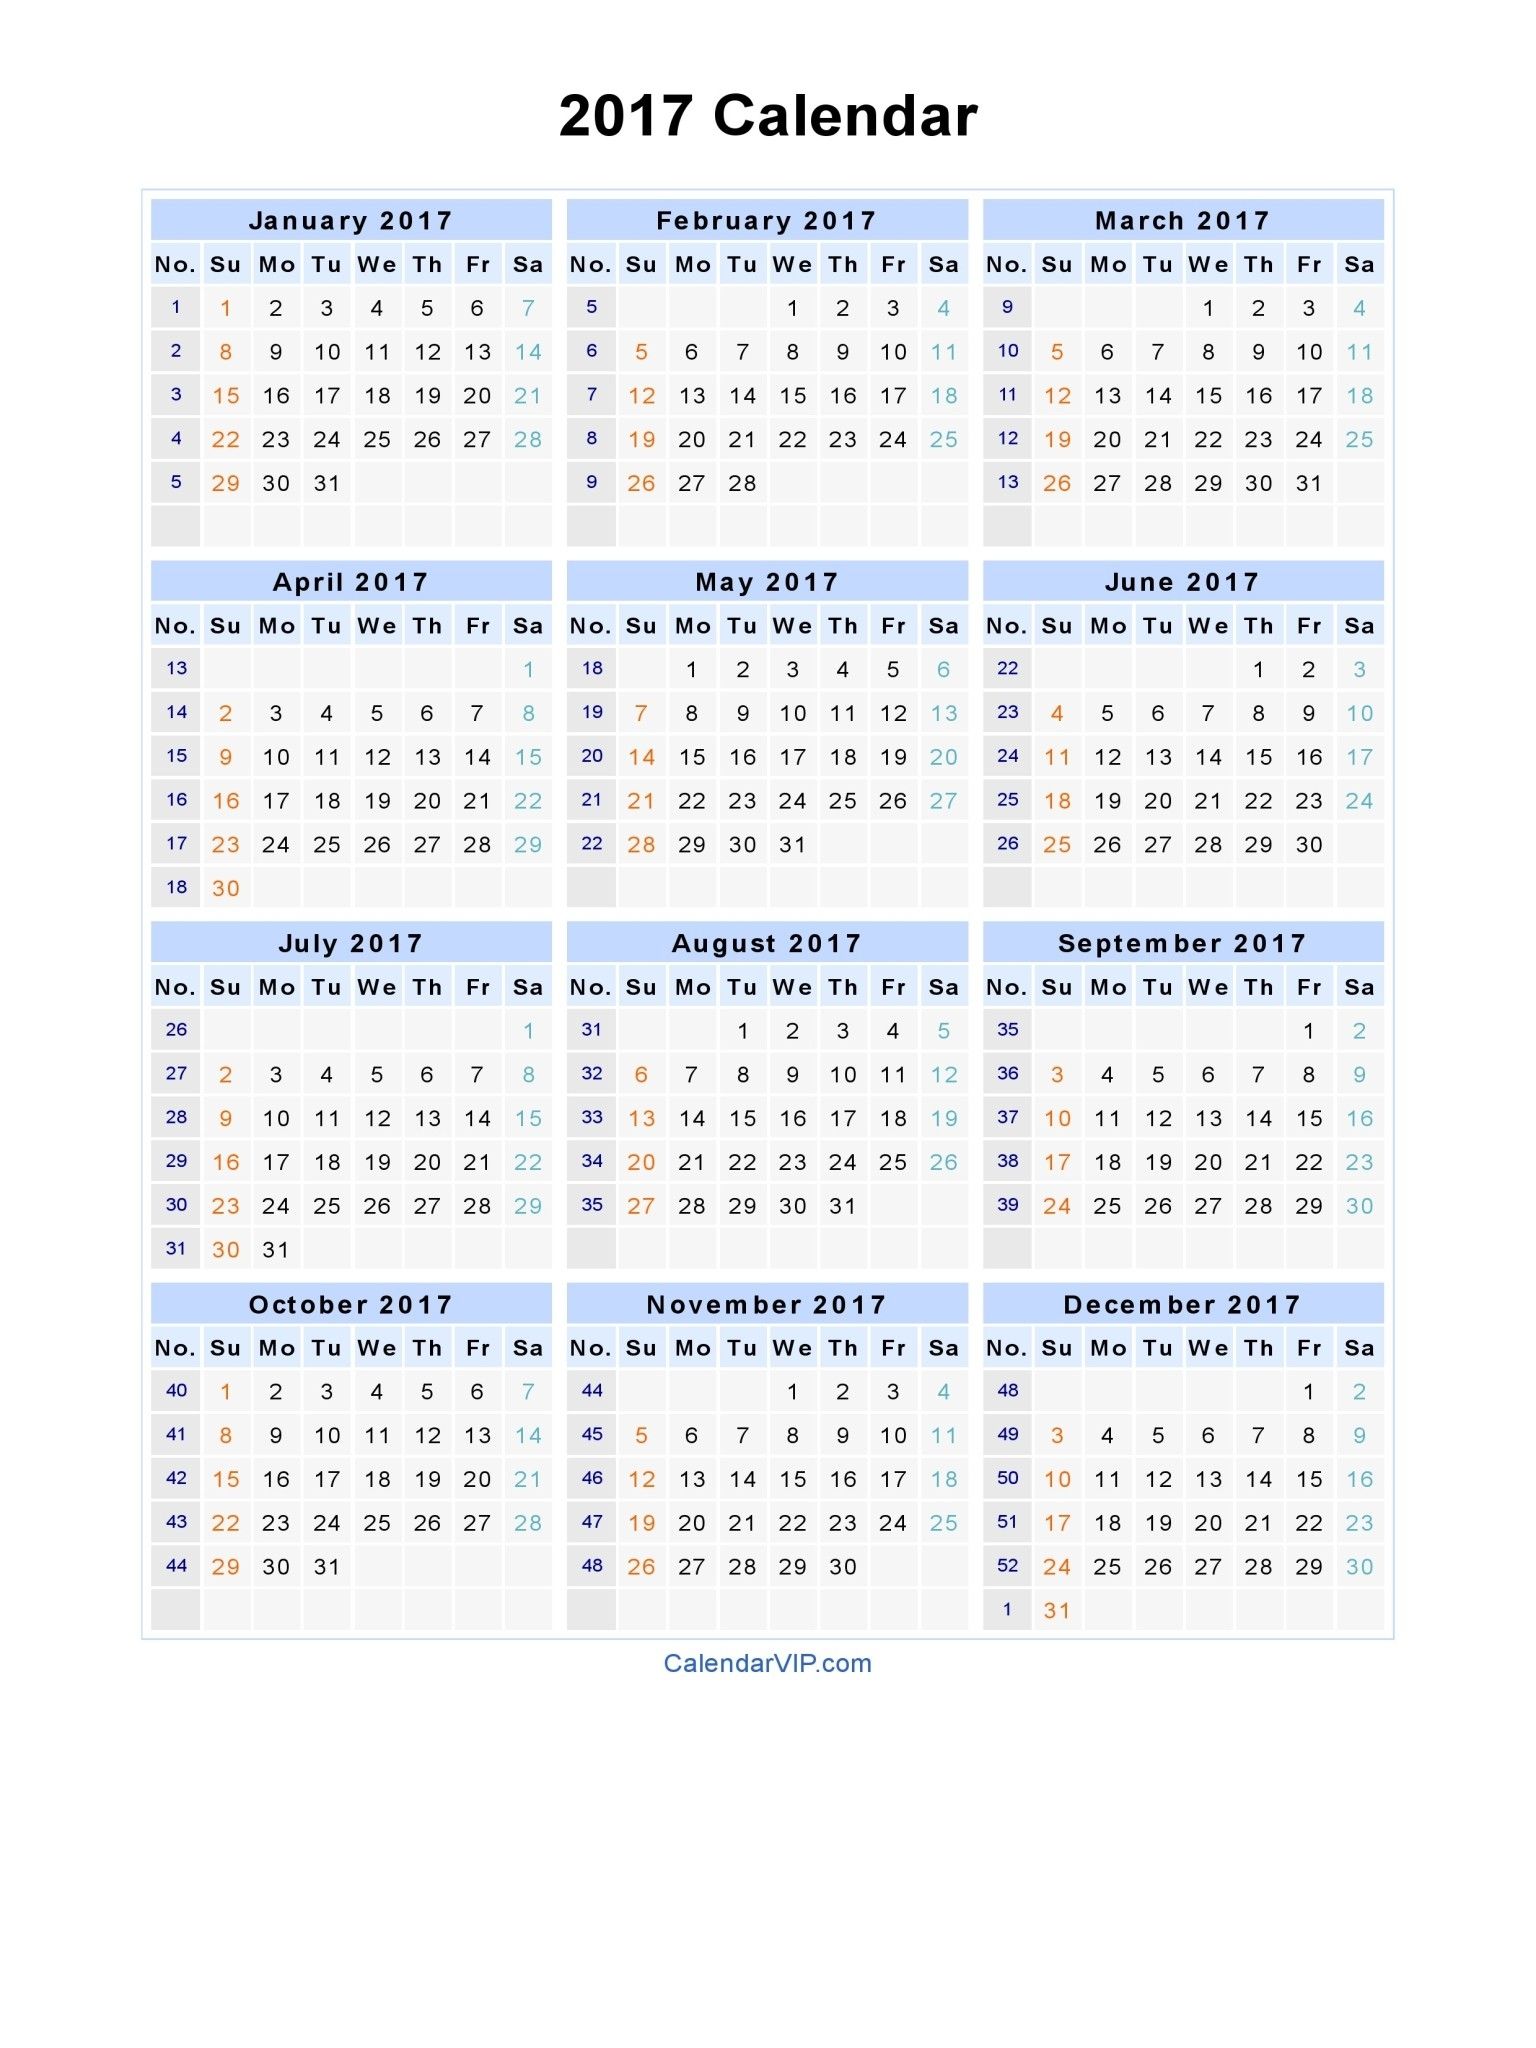 2017 Calendar - Blank Printable Calendar Template In Pdf  Printable Calendar 2017 Word